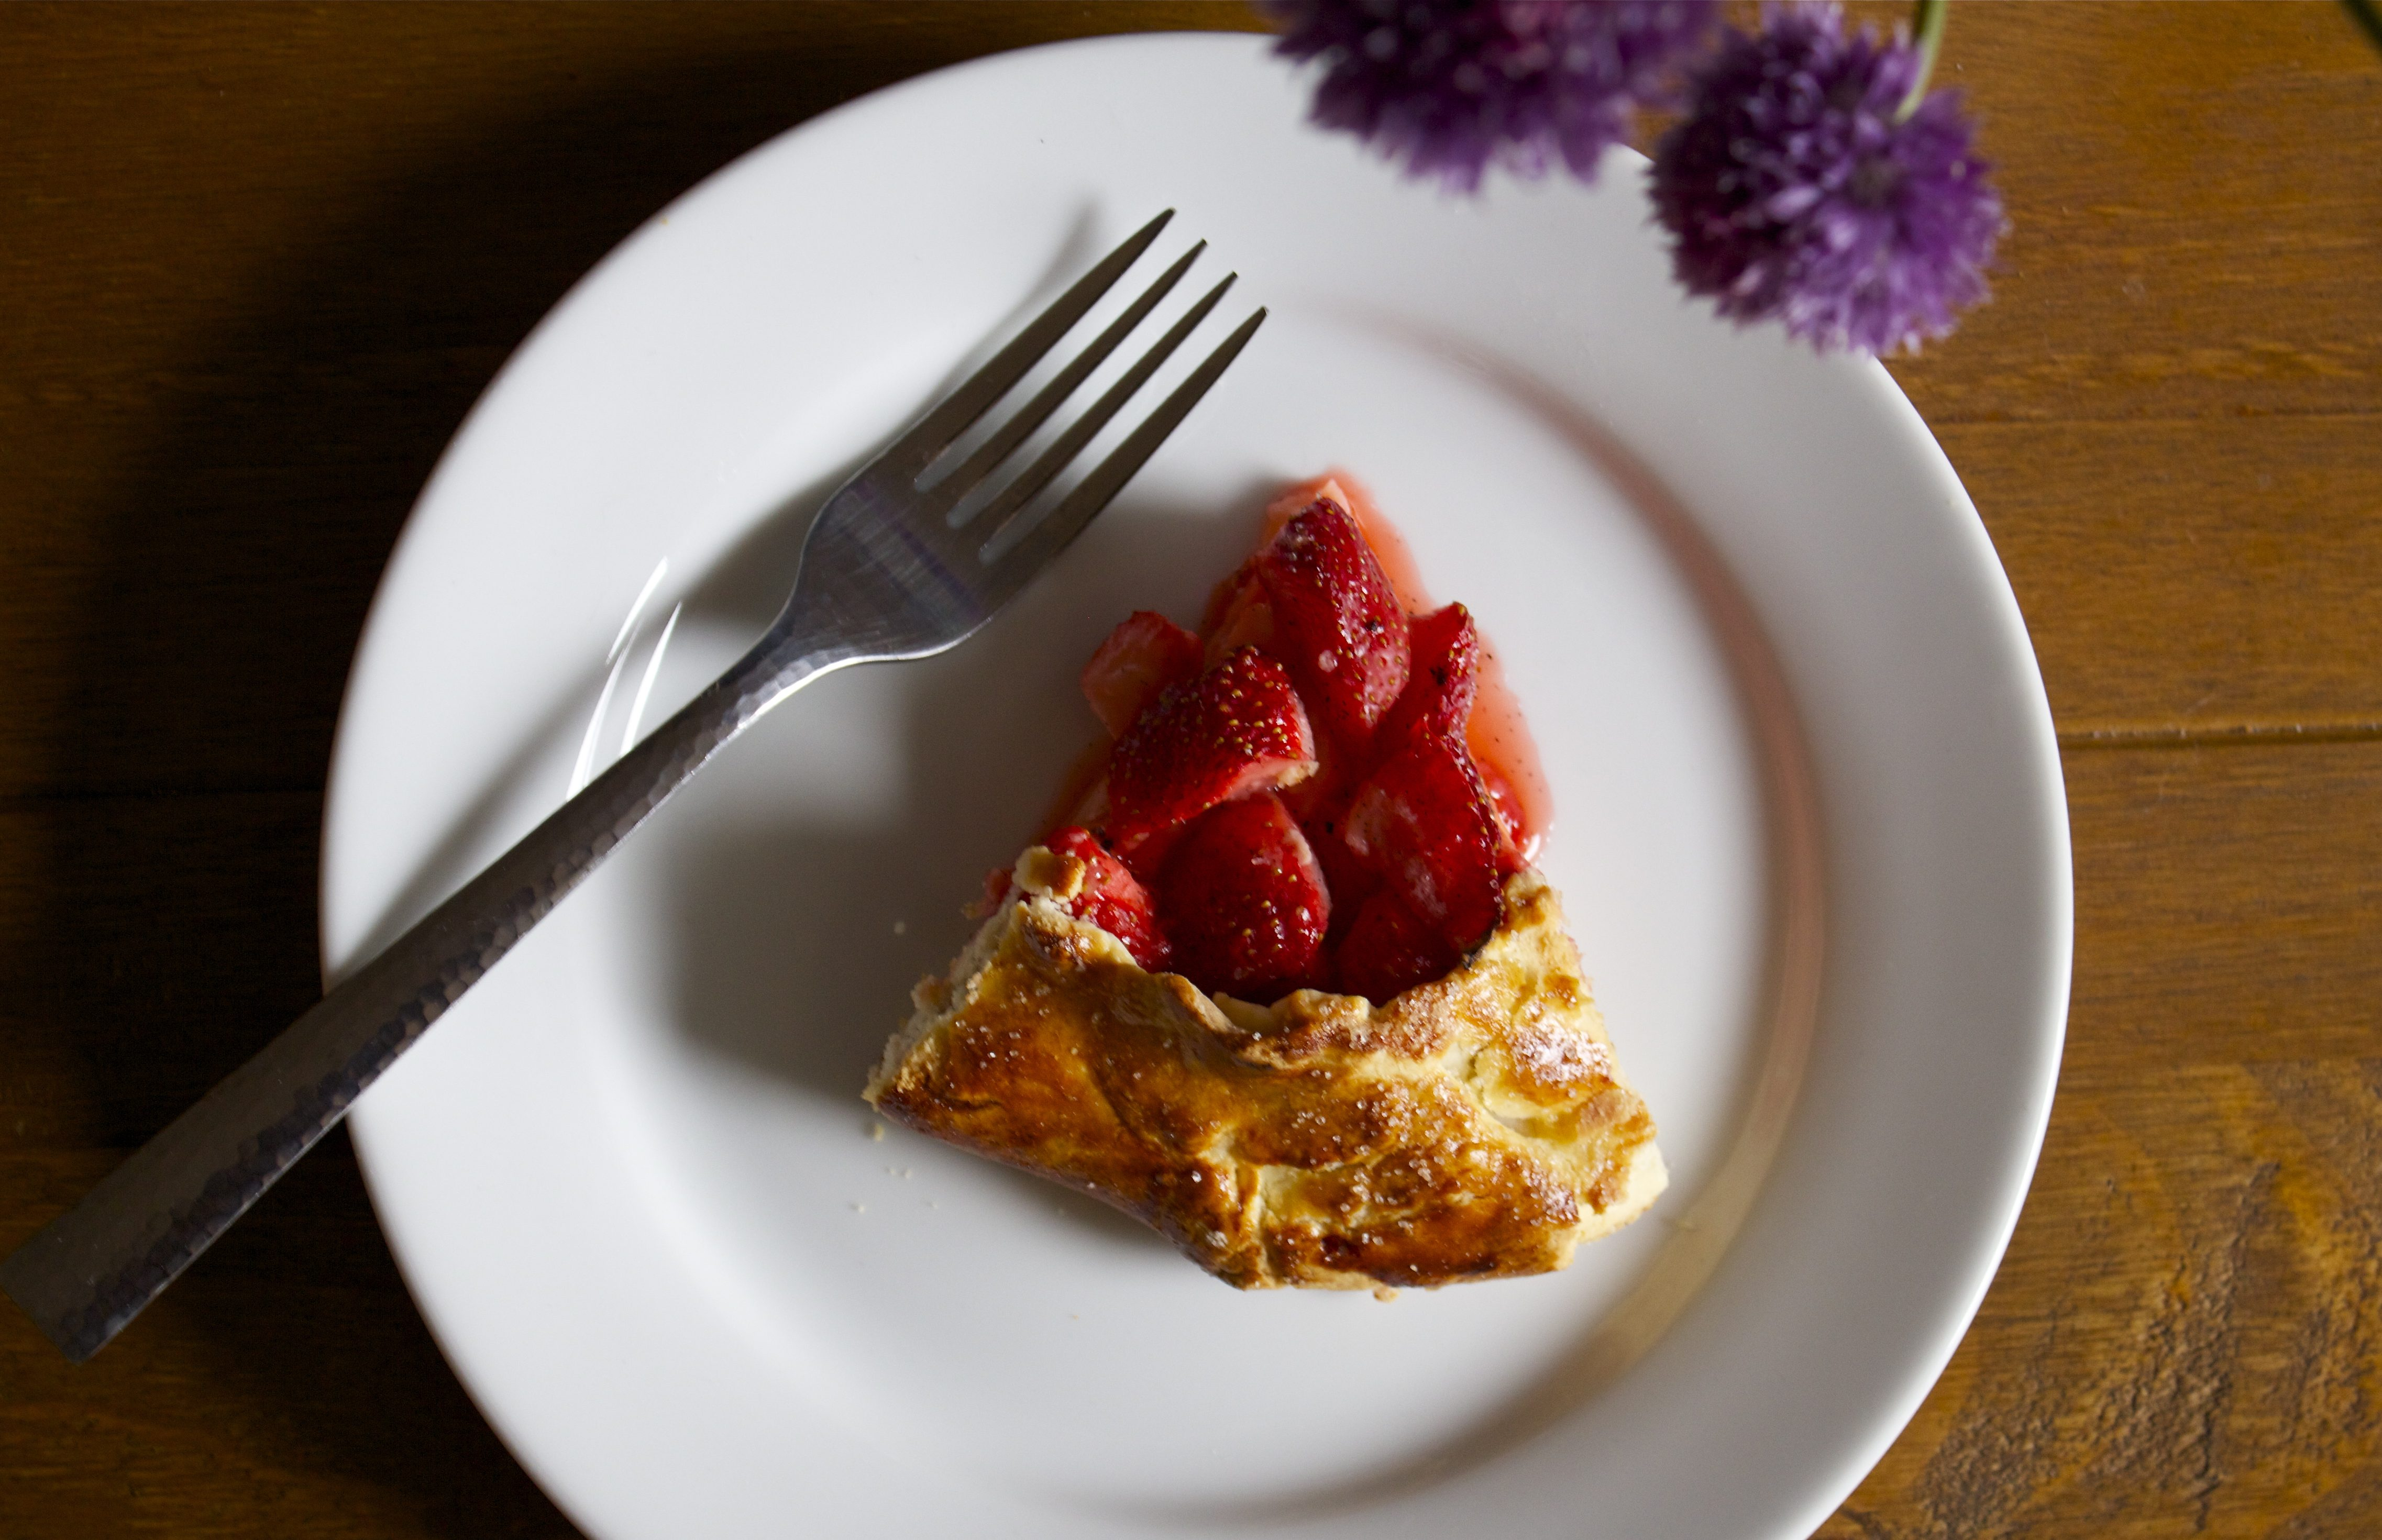 Gluten Free, Strawberry, Apple, Vanilla , Bean, Galette ,Recipelifestyle blog uk, lifestyle, lifestyle blog, gluten free blog, gluten free blogger uk, gluten free recipes,